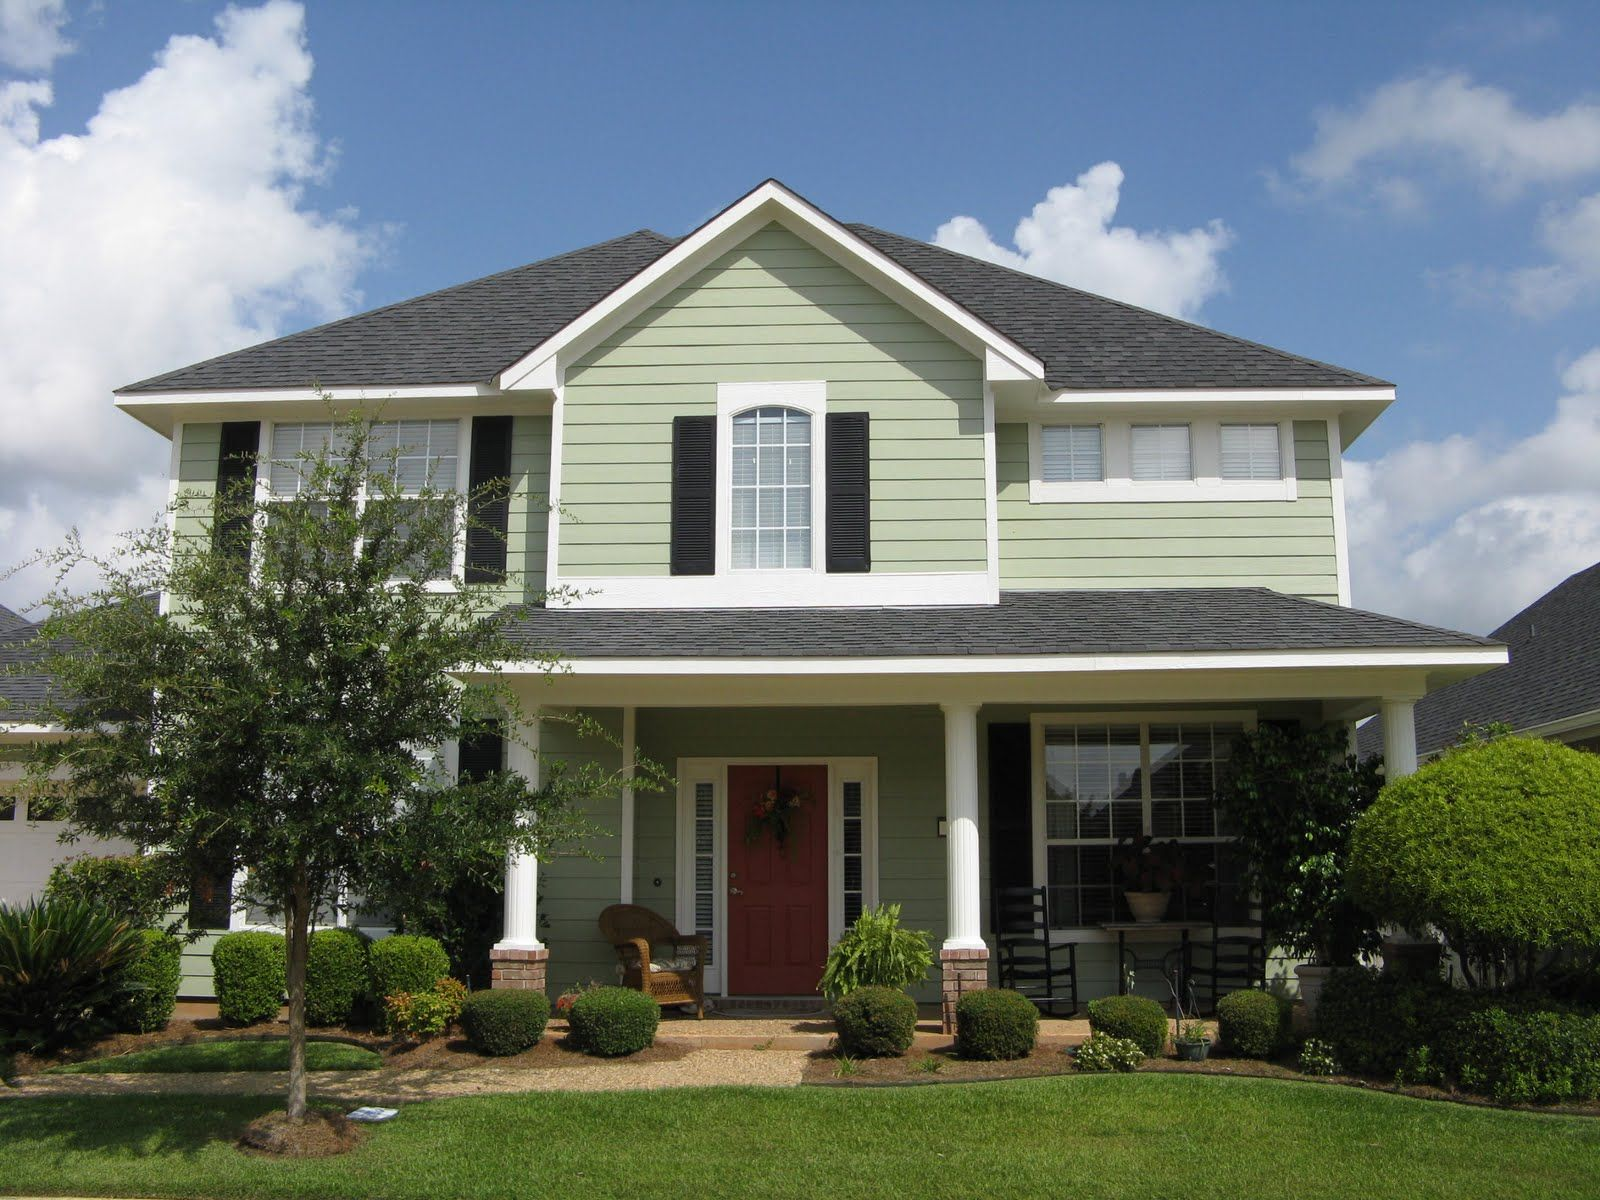 ideas for exterior house colors - Exterior House Paint Design